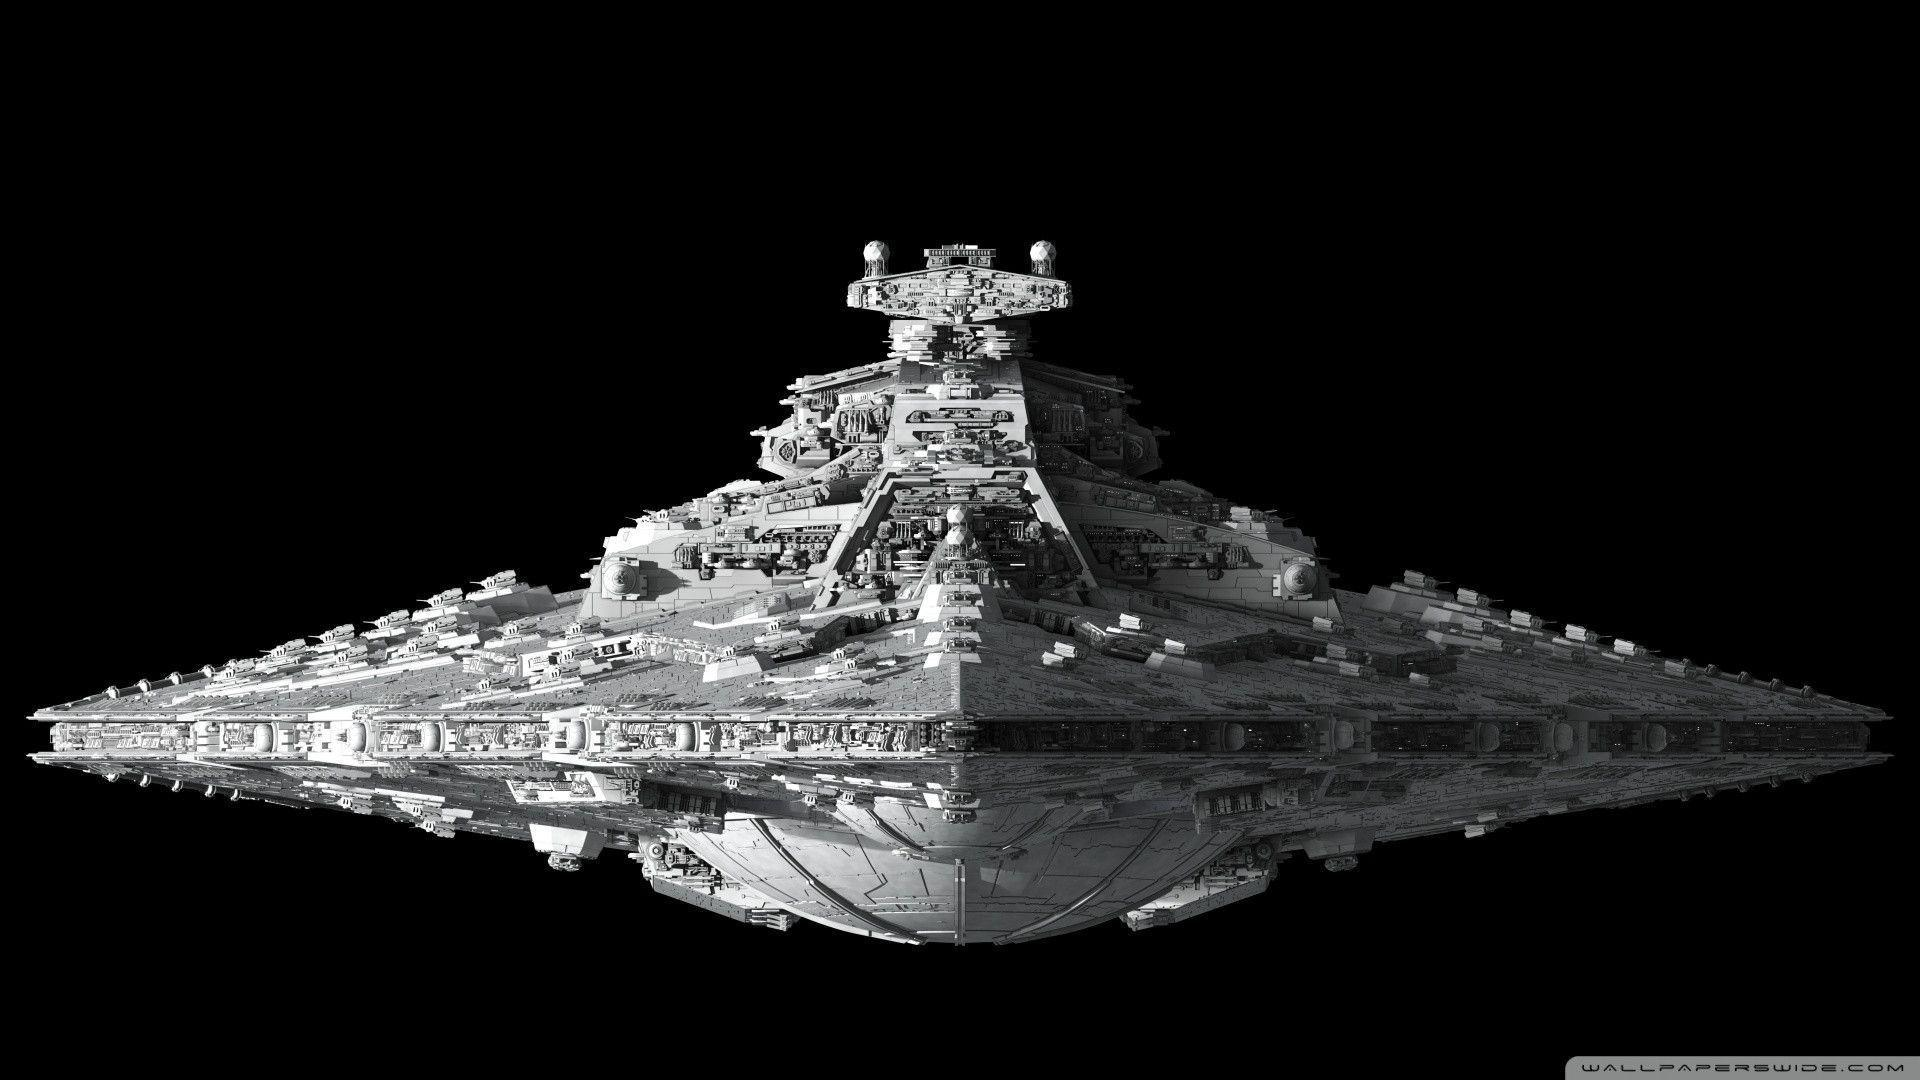 1920x1080 Star Wars Destroyer desktop PC and Mac wallpapers